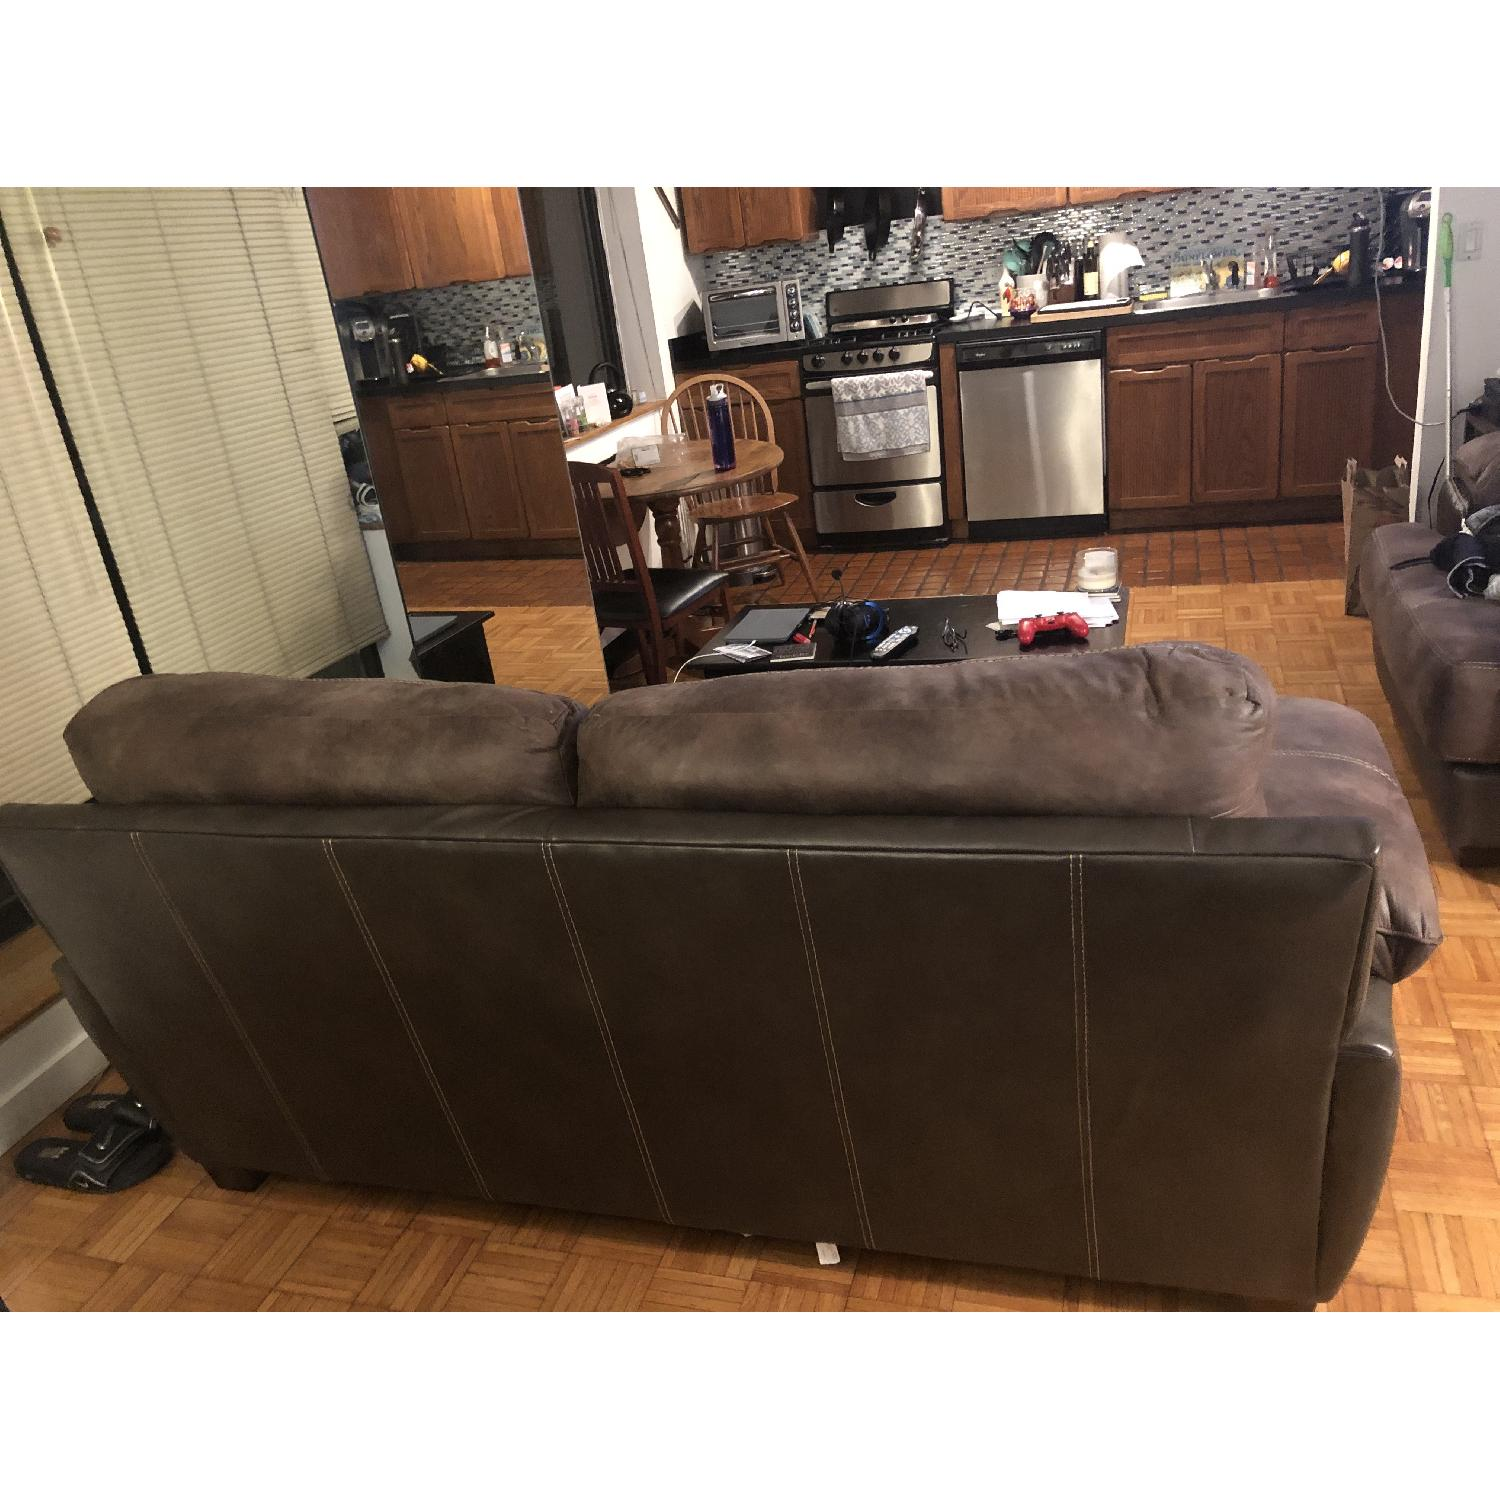 Bob's Bob-o-pedic Suede/Leather Sofa - image-4